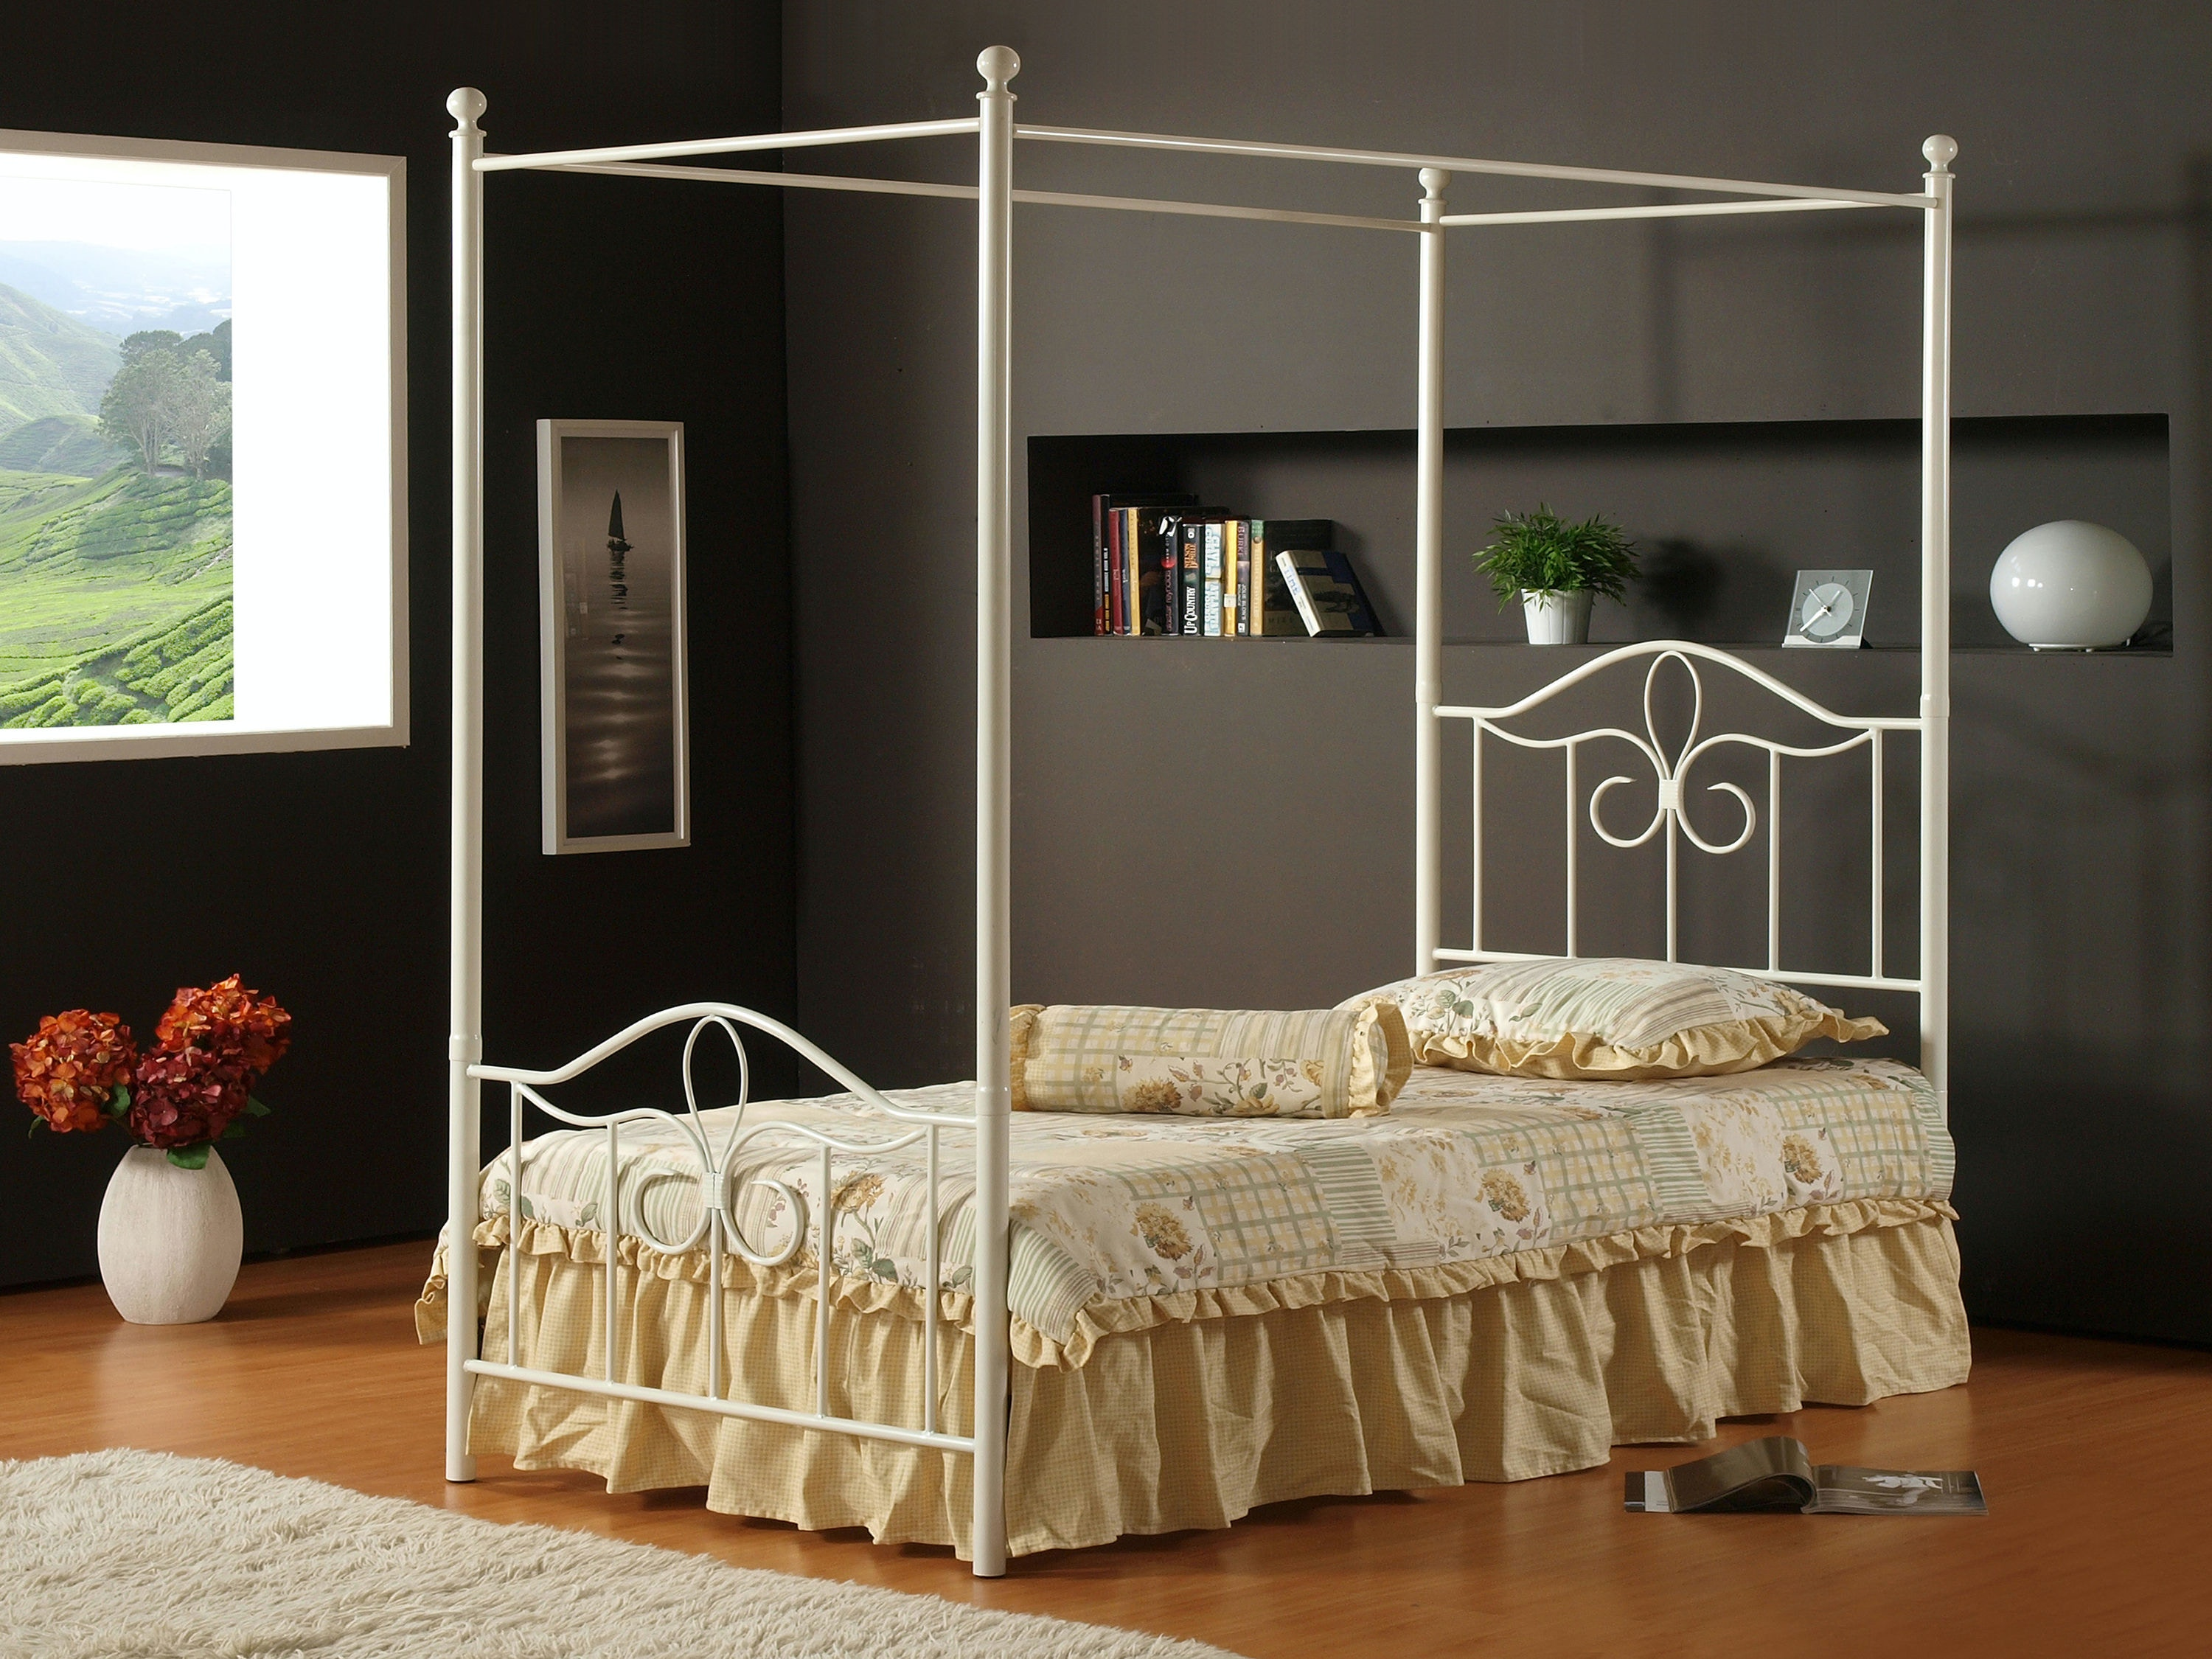 Hillsdale Furniture Bedroom Westfield Canopy Kit   Full 1354 261   Furniture  Kingdom   Gainesville, FL